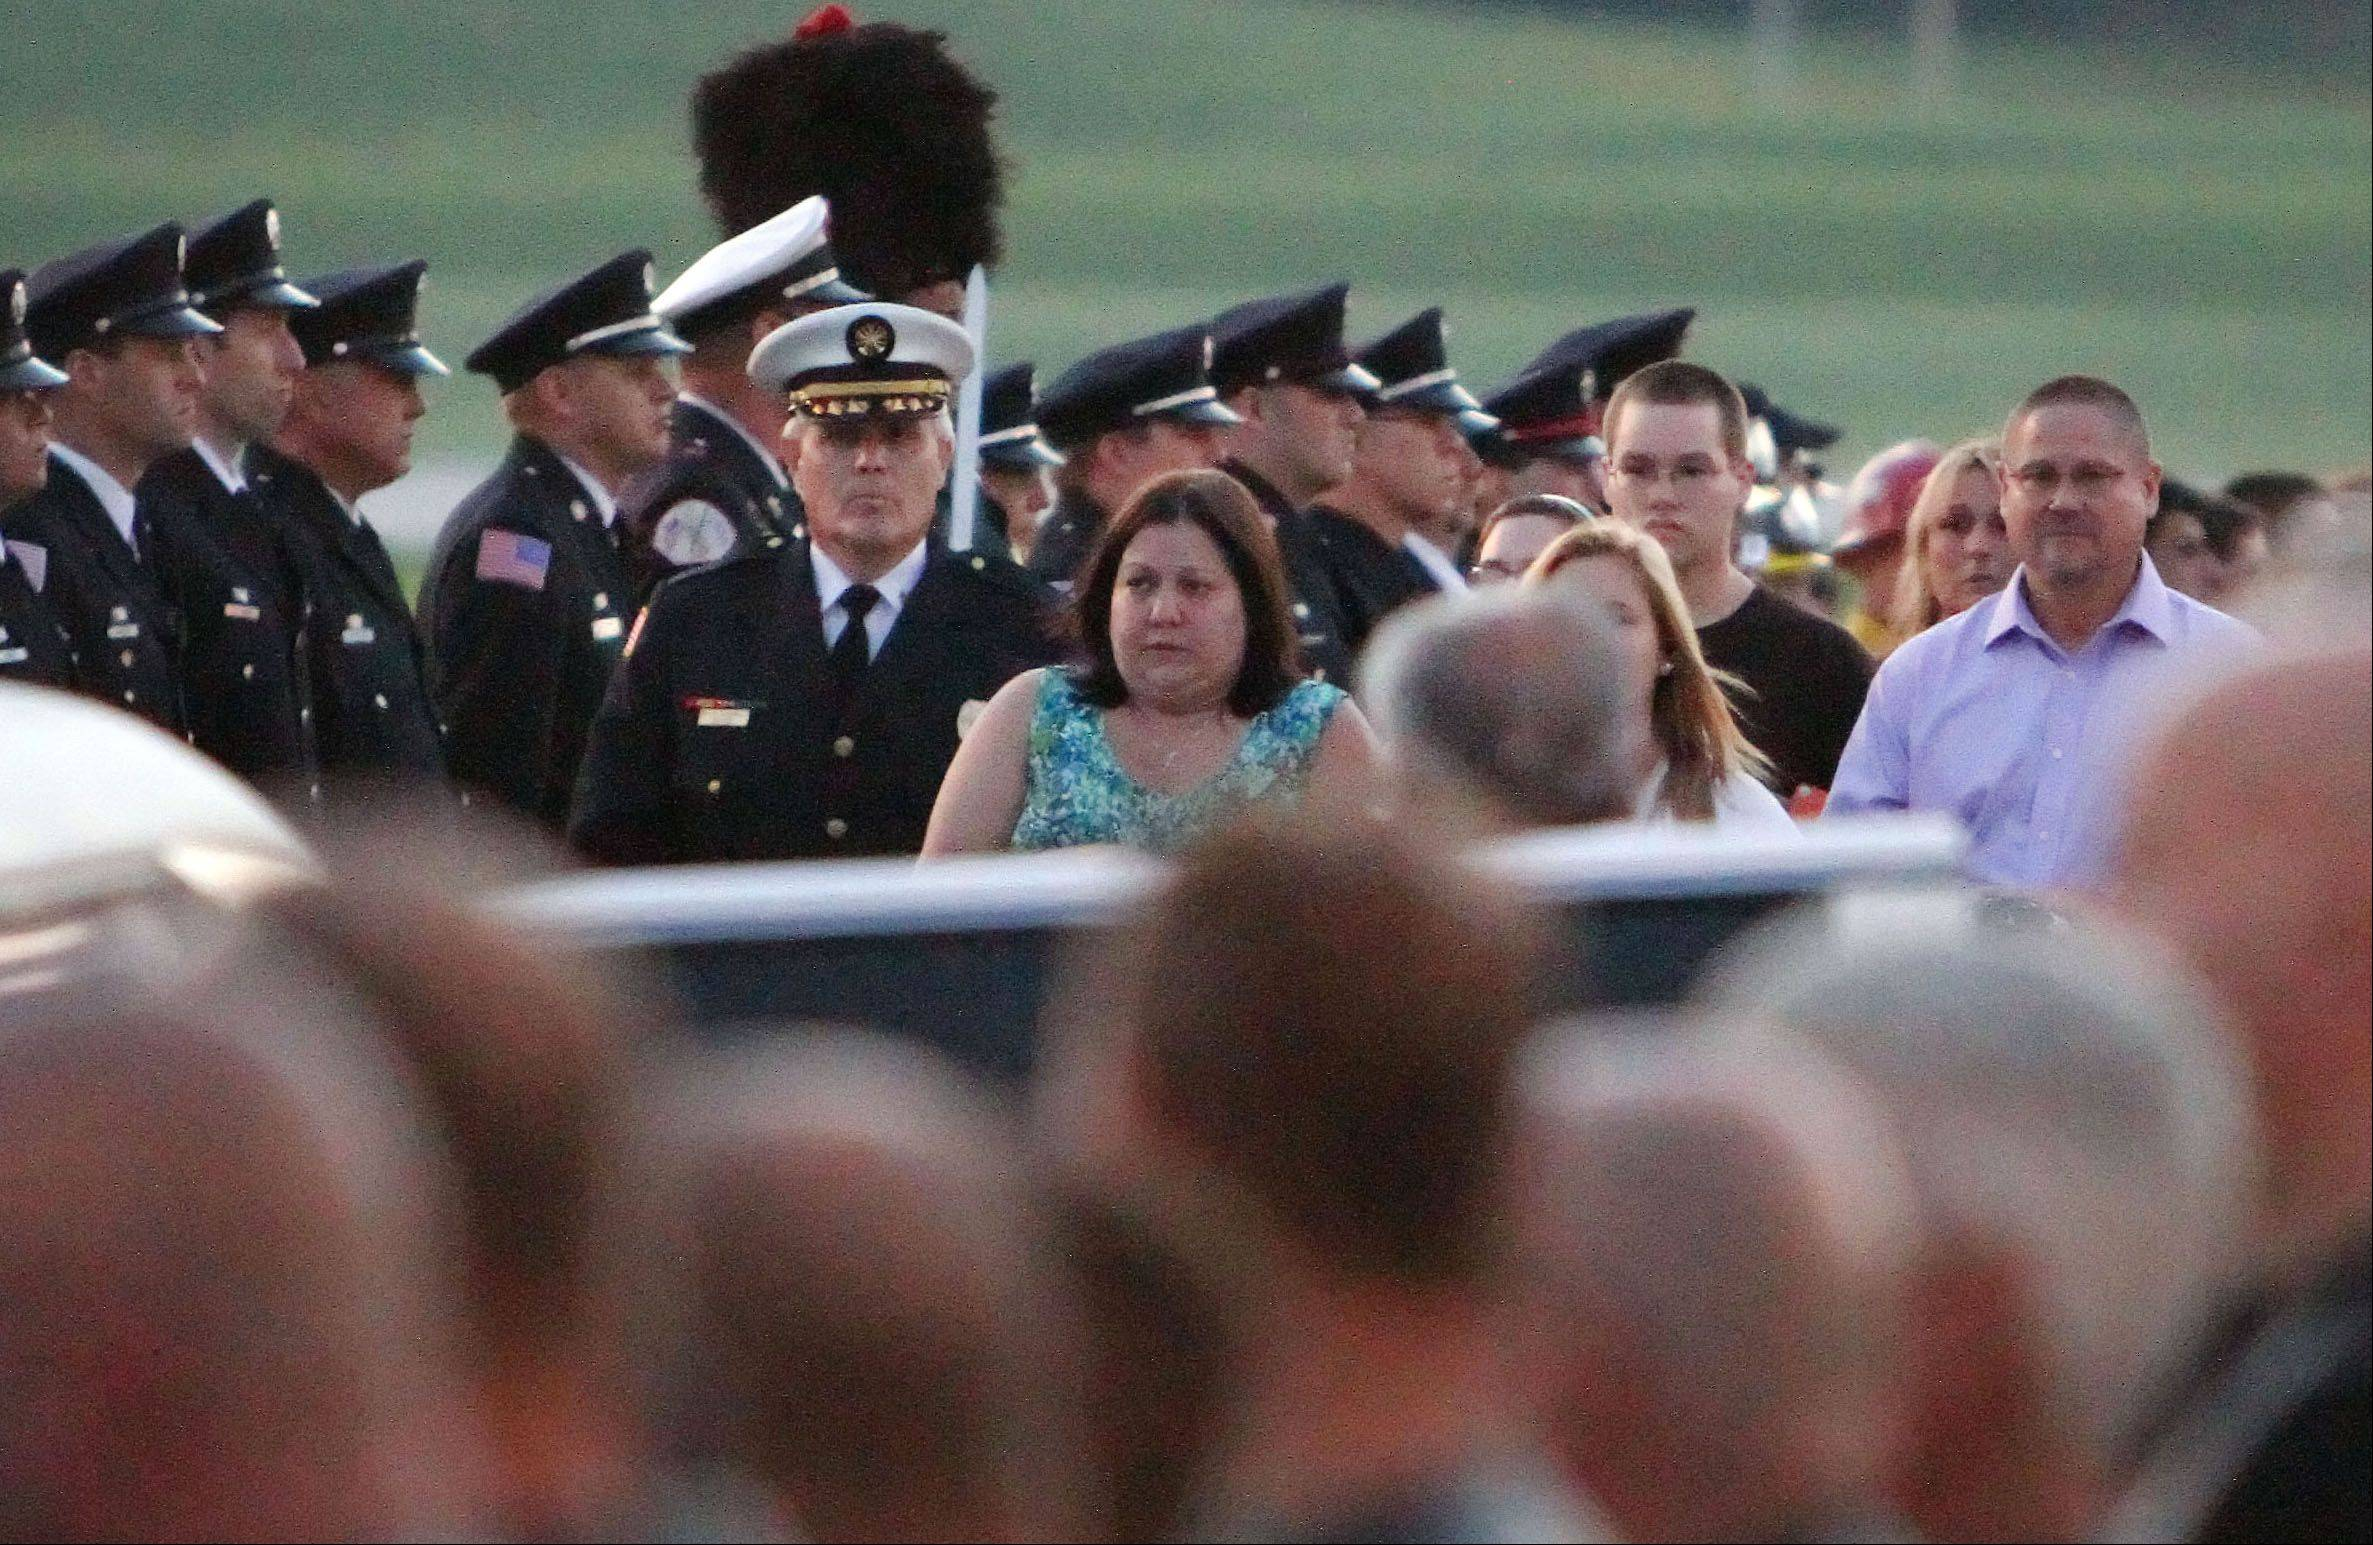 Family members walk to a limo with the remains of Anthony Rose of Beach Park at Waukegan Regional Airport Wednesday night. Rose was killed June 30 along with other members of the Granite Mountain Hotshots while battling a wildfire north of Phoenix.